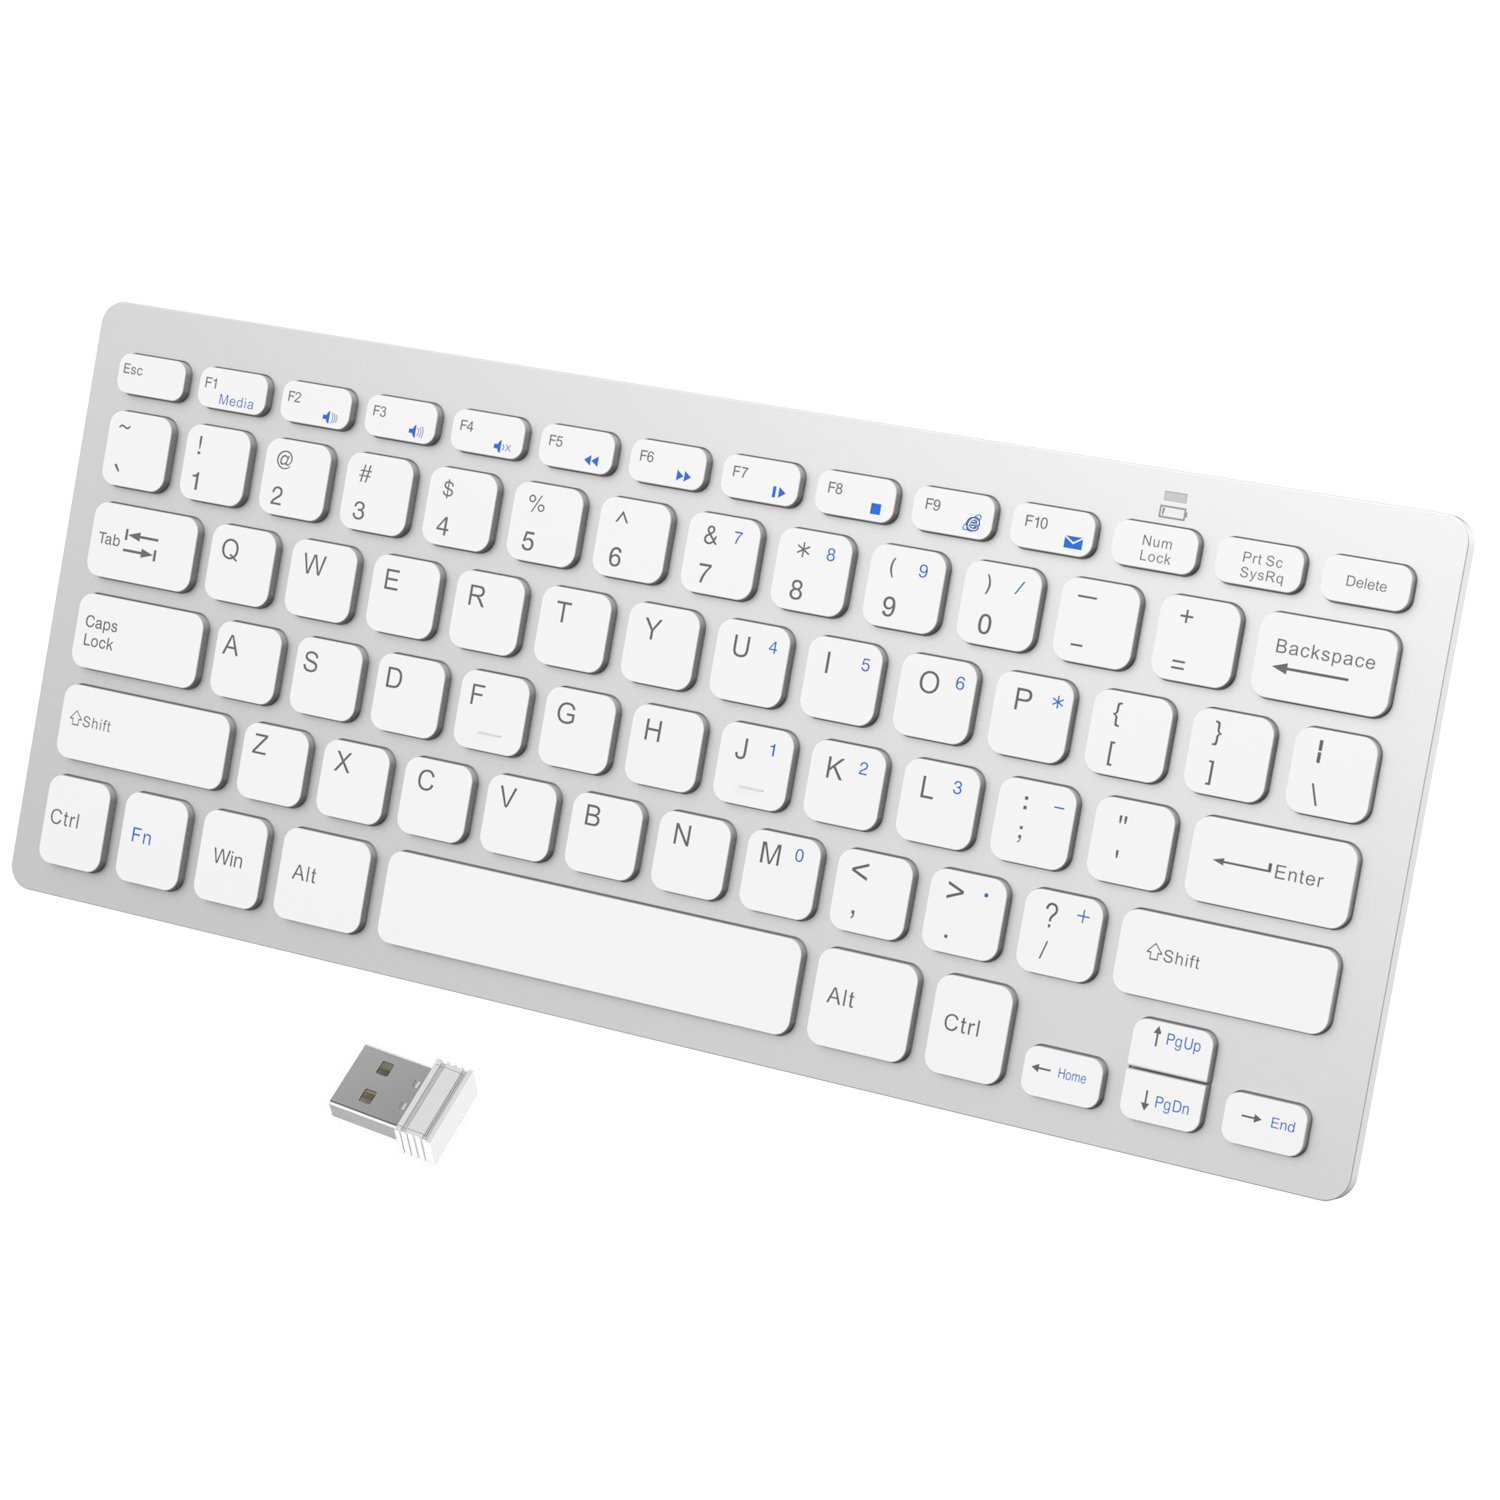 JETech 2.4GHz Wireless Keyboard for Windows (White) 2161-KB-WIRELESS-WH